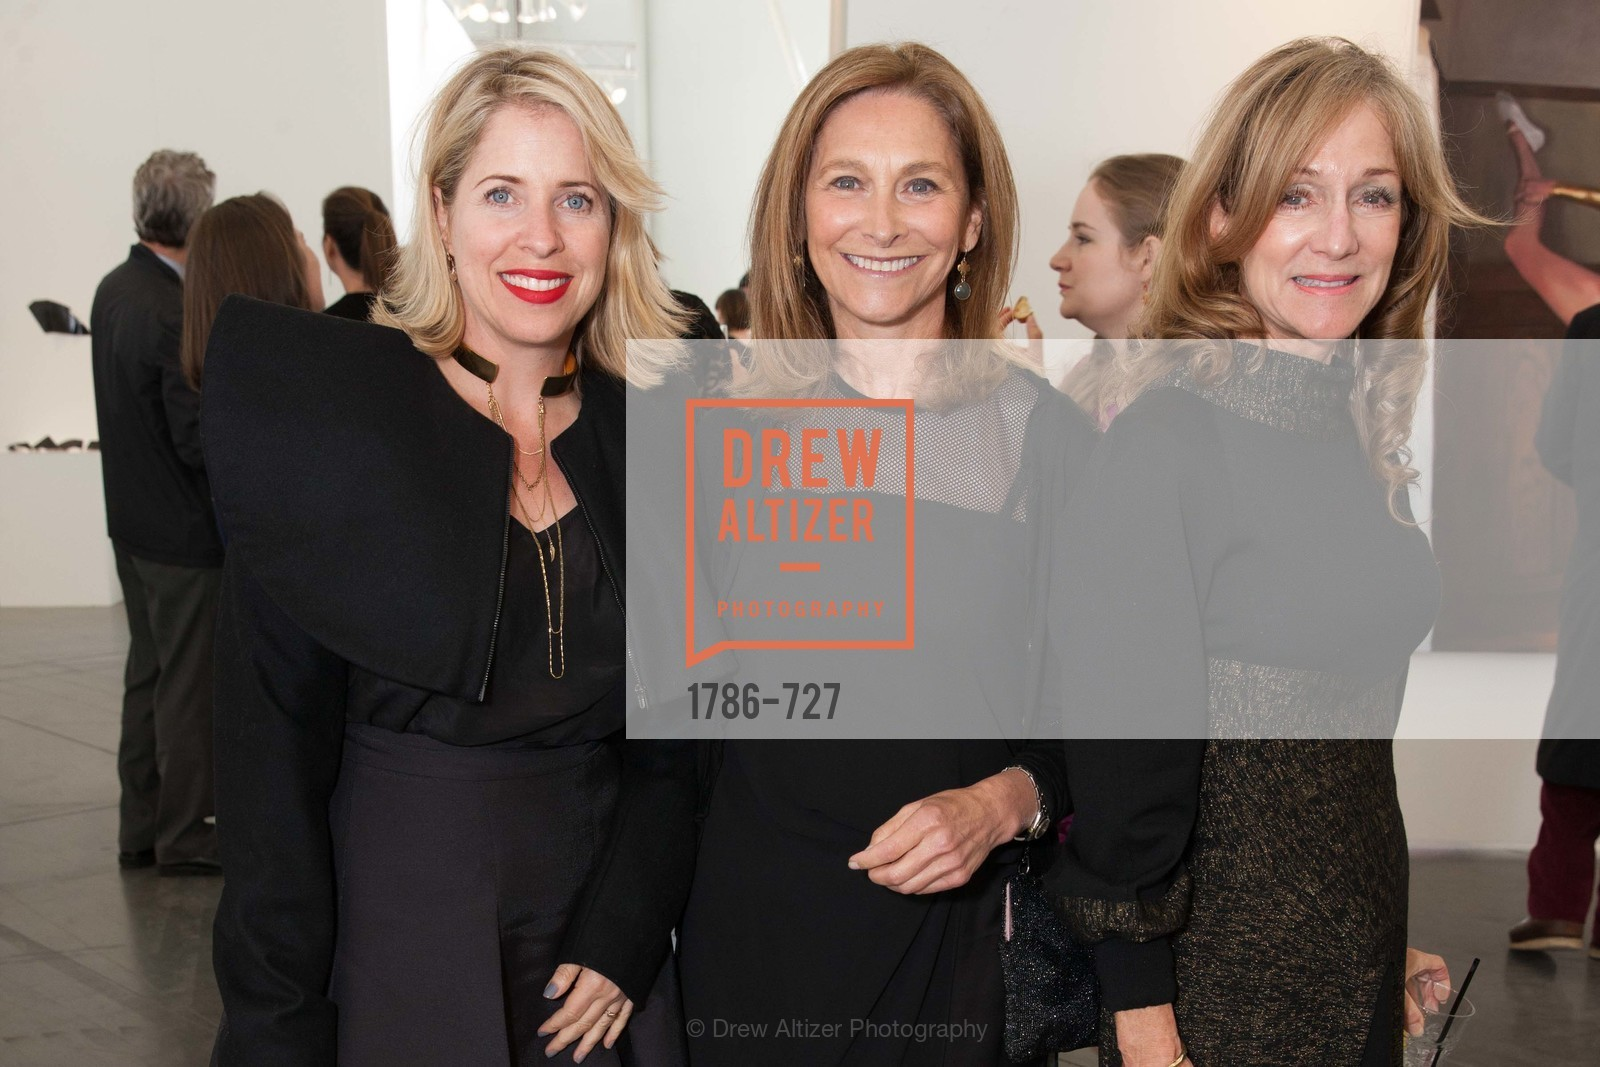 Tiffany Shlain, Sari Swig, Jill Manton, SAN FRANCISCO ART INSTITUTE Gala Honoring Art Visionary and Advocate ROSELYNE CHROMAN SWIG, US, May 14th, 2015,Drew Altizer, Drew Altizer Photography, full-service agency, private events, San Francisco photographer, photographer california